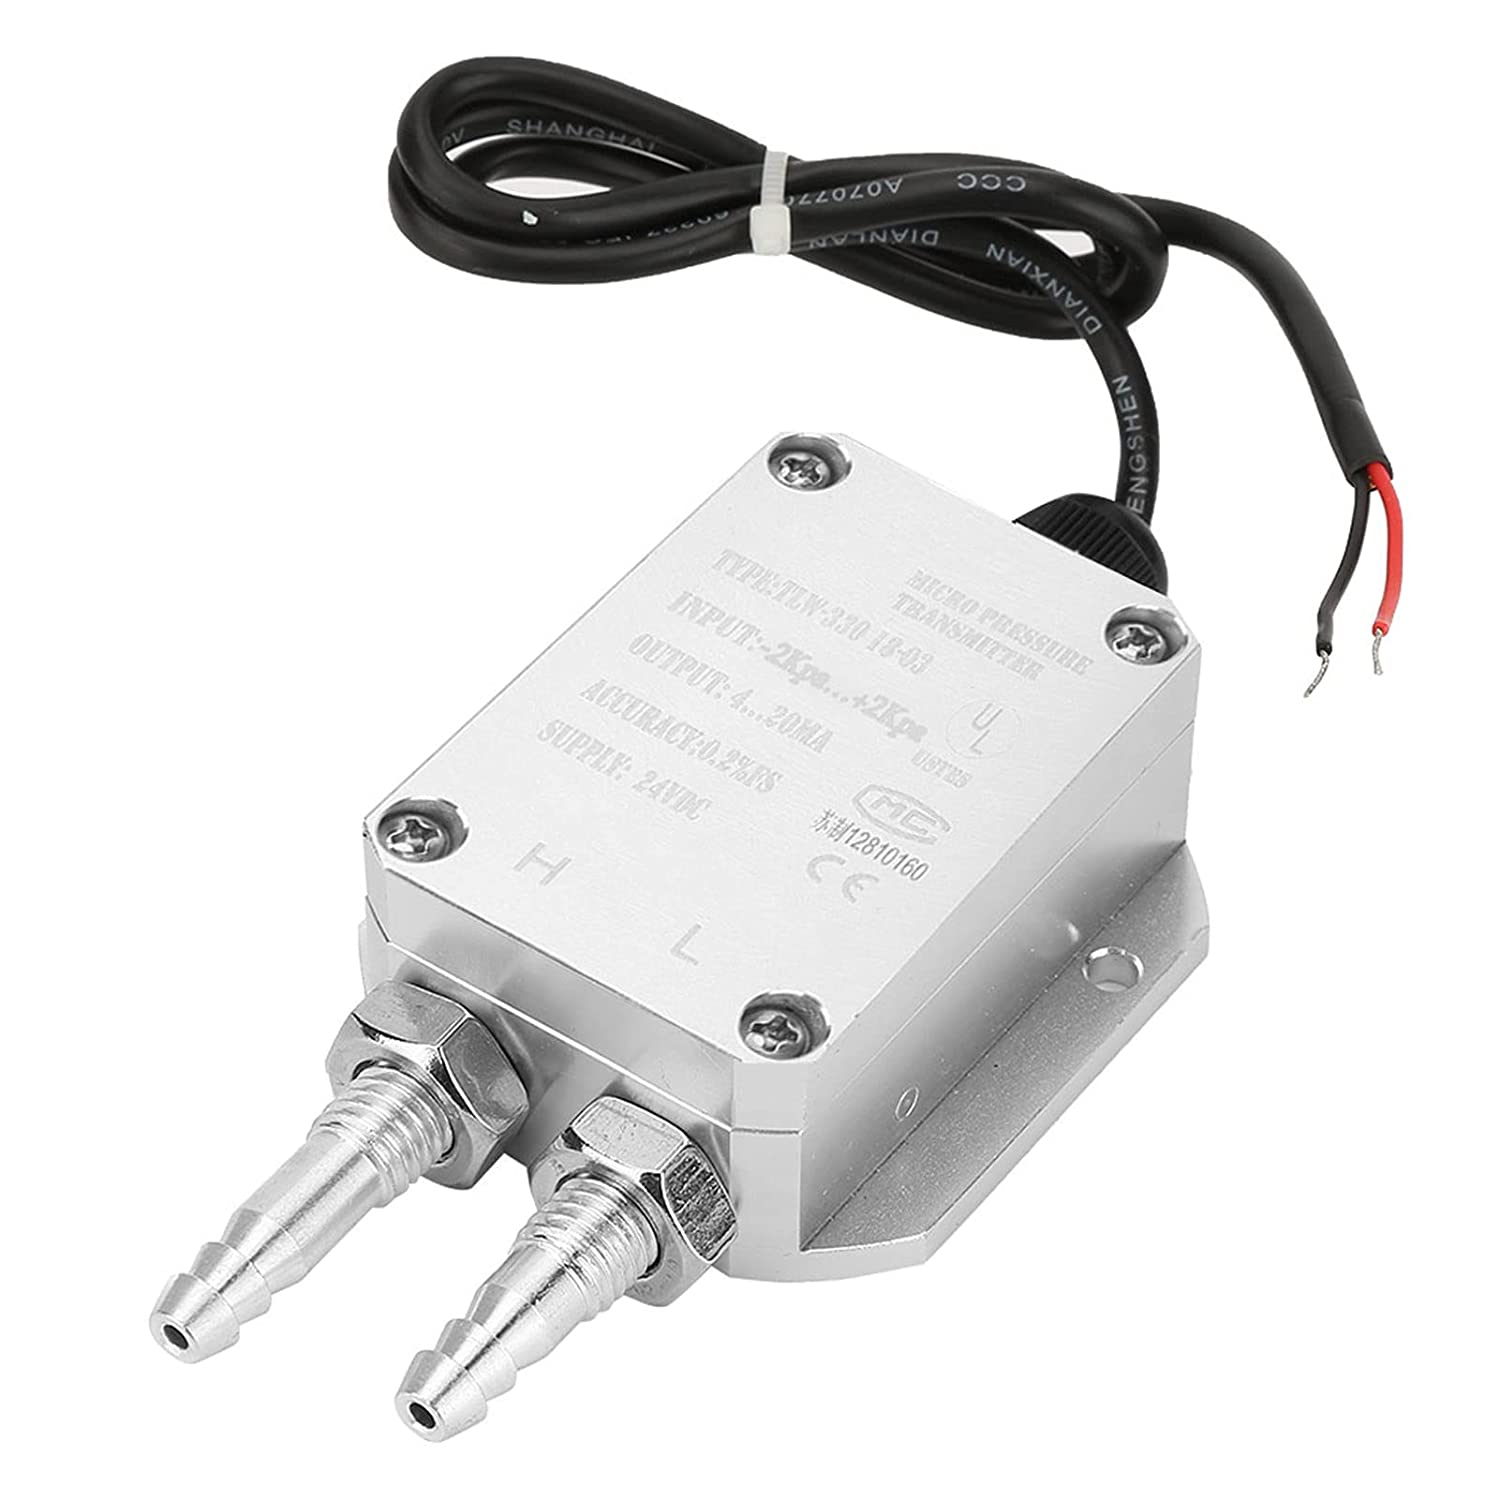 Pressure Brand new Outlet ☆ Free Shipping Transmitter Mini Difference Die-cas Stable